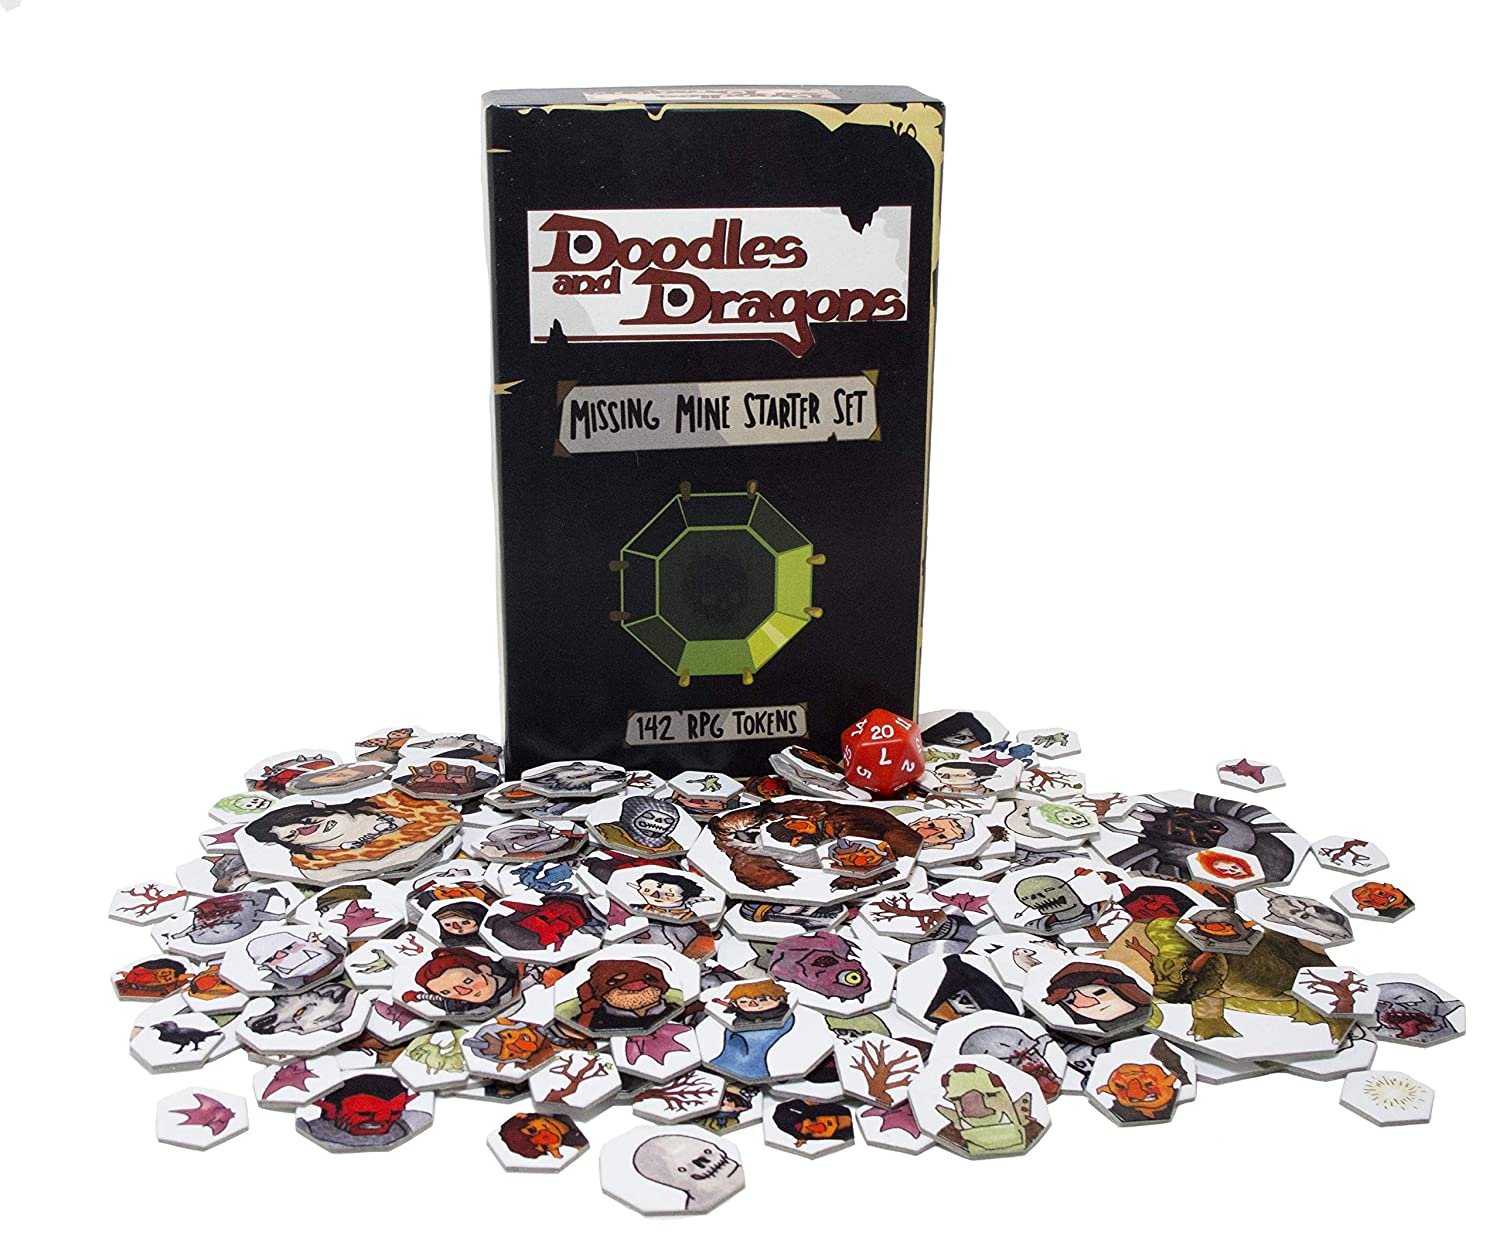 Doodles and Dragons Missing Mine Starter Set - Every PC, NPC, and Monster  and More Needed for The Official 5E D&D Starter Set Campaign ( 142 Unique